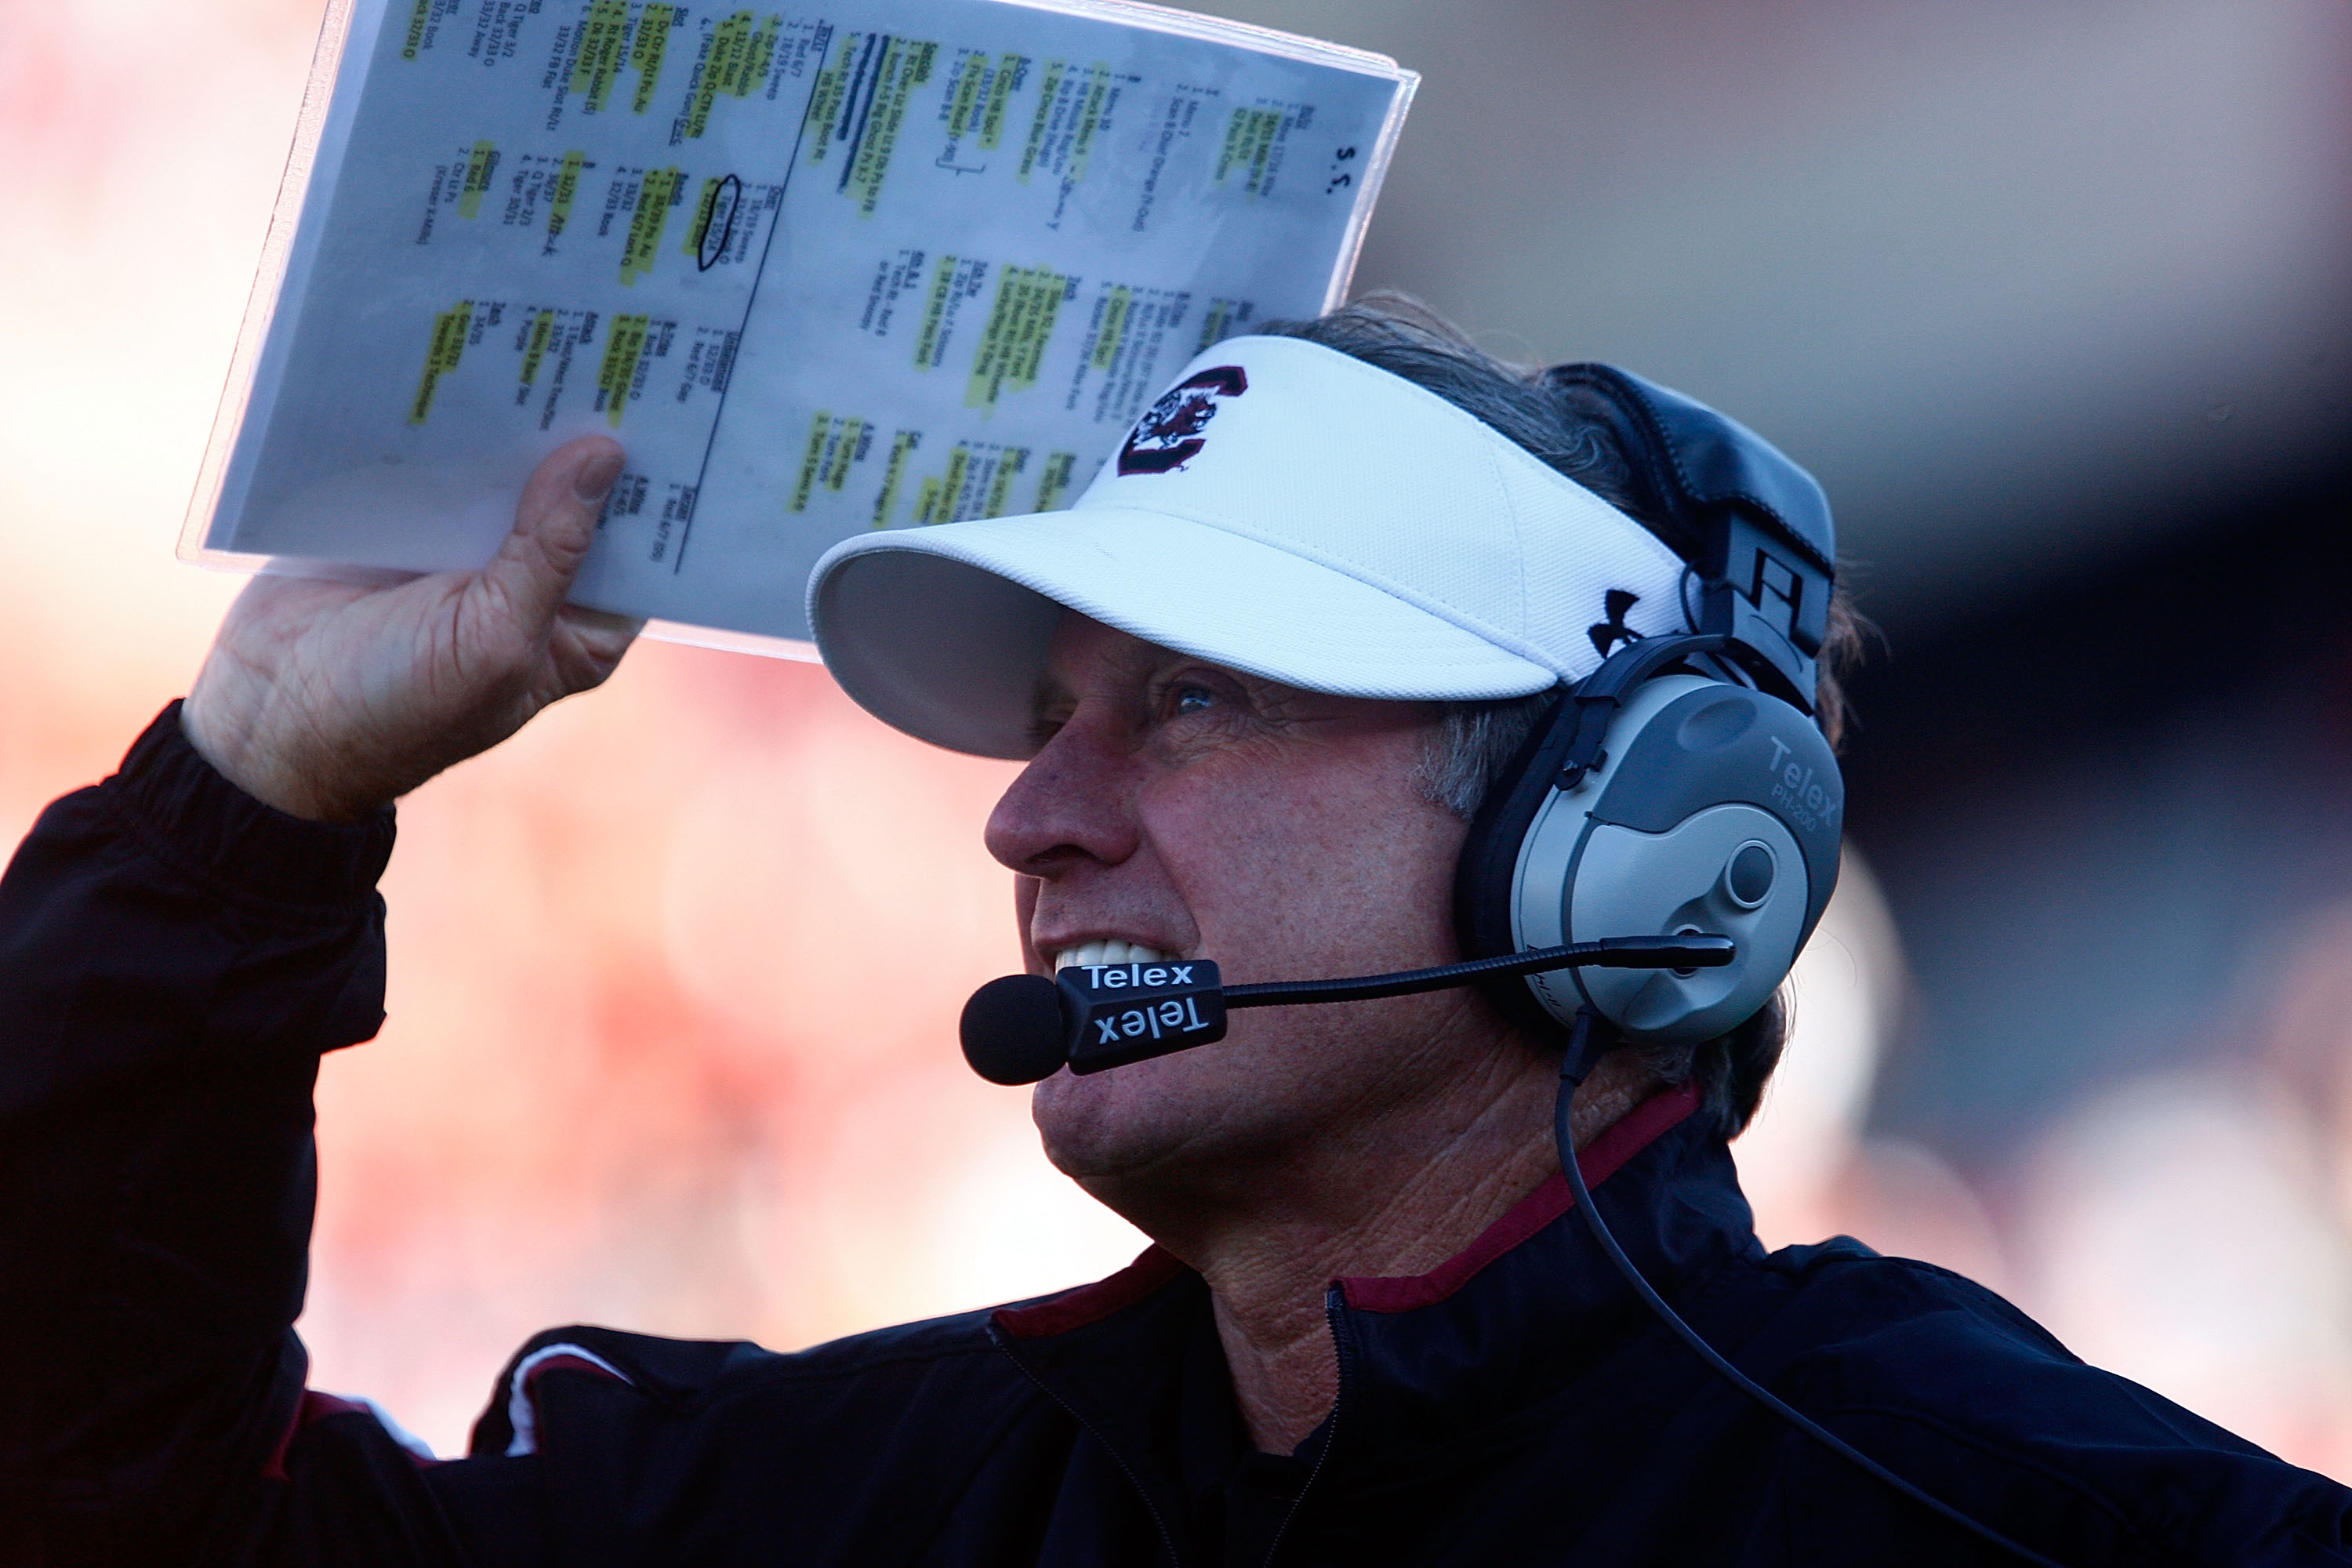 COLUMBIA, SC - NOVEMBER 28:  South Carolina Gamecocks Head Coach Steve Spurrier walks the sideline against the Clemson Tigers at Williams-Brice Stadium on November 28, 2009 in Columbia, South Carolina.  (Photo by Scott Halleran/Getty Images)